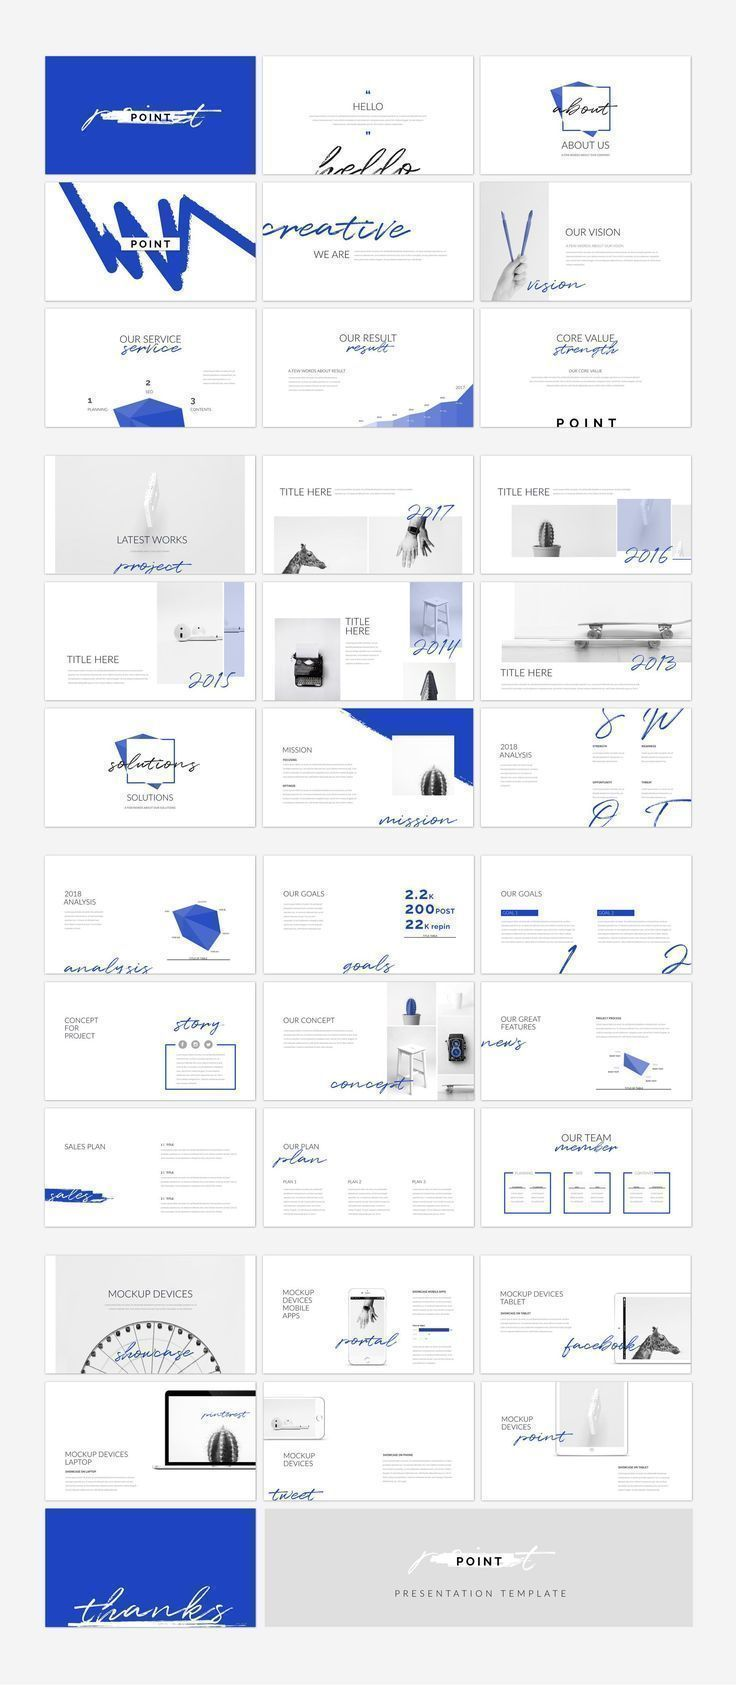 Simple Minimal Layout Simplep Point Presentation Template Ad Slides Pinterest Templates Ppt Design And